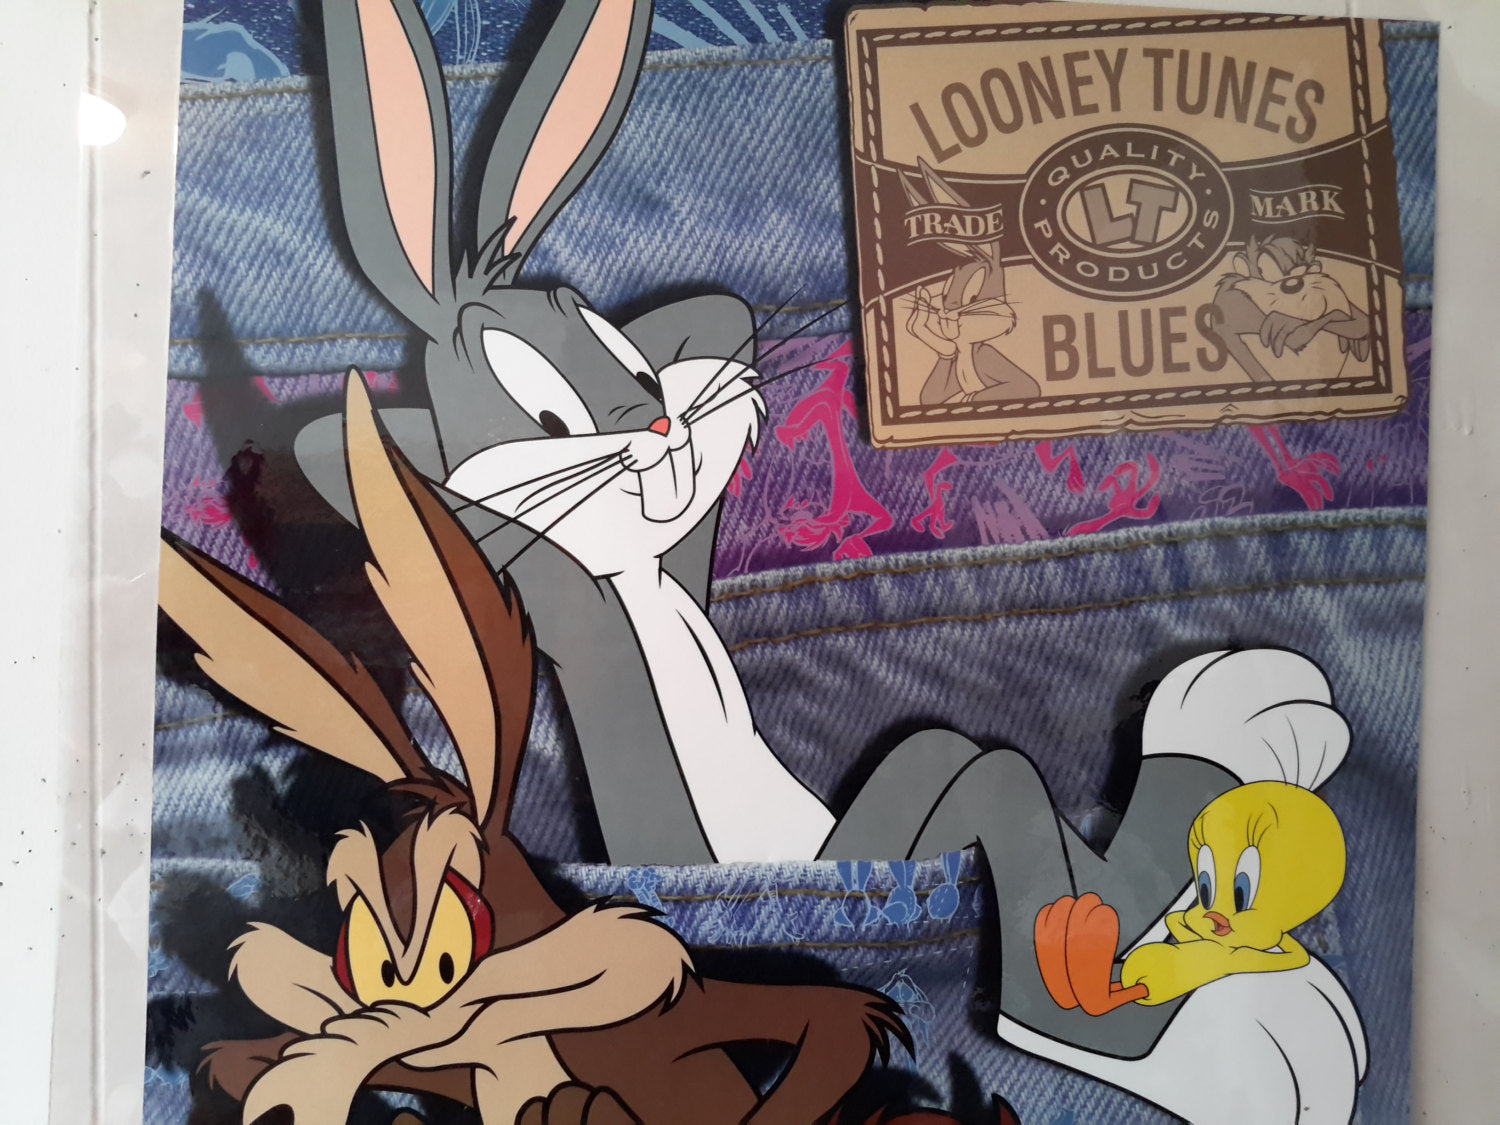 Vintage 90s Looney Tunes Blues Denim Poster Space Jam Original 1996